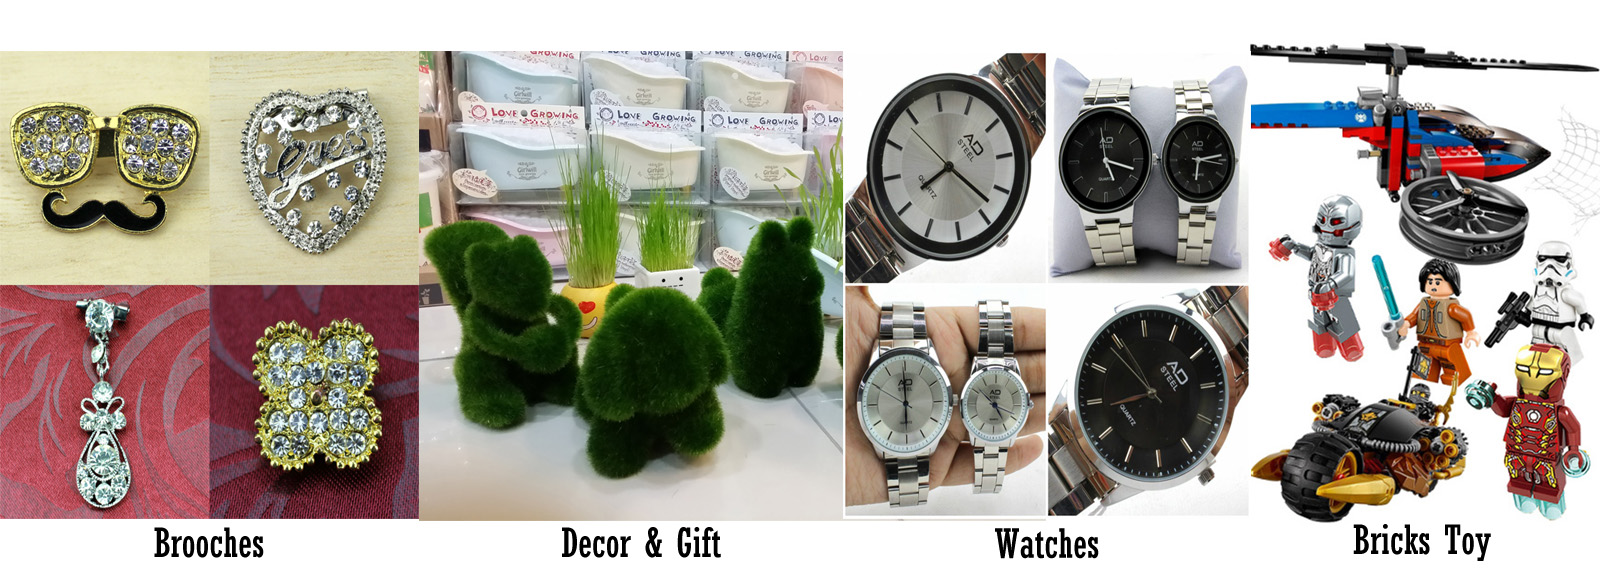 Others Home Decor Gift Watches Brooches